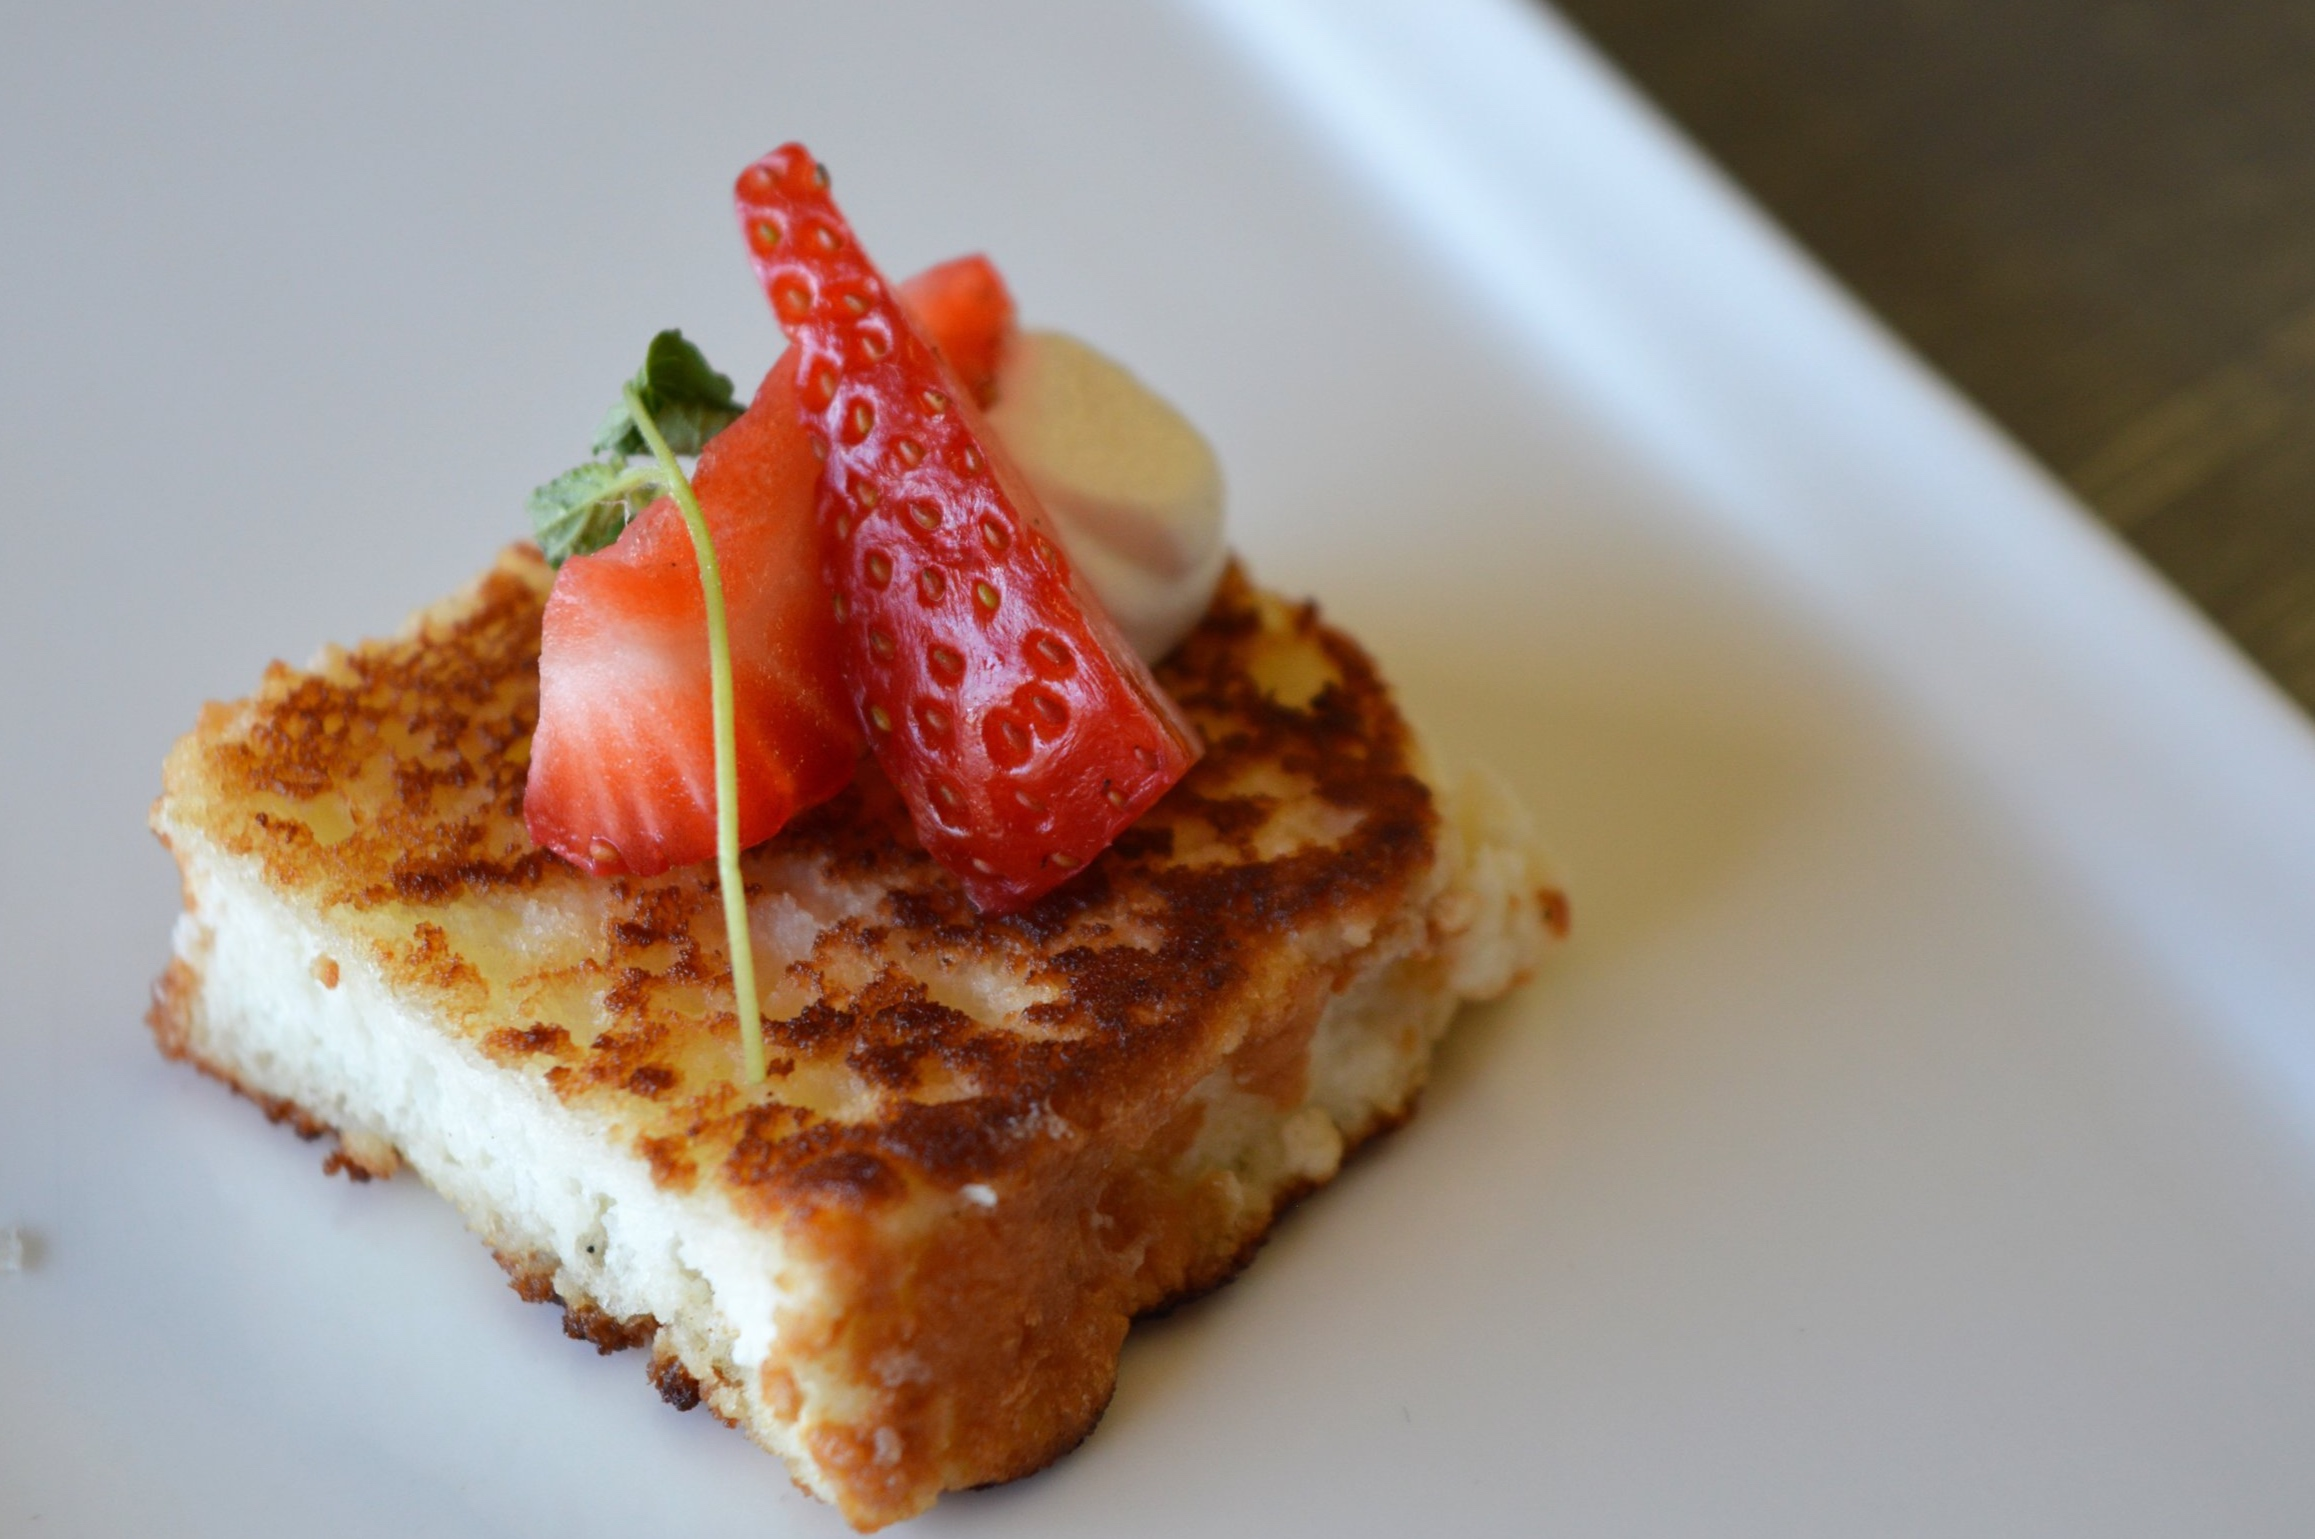 Seared Angel Cake with Strawberries and Kaffir Lime Cream